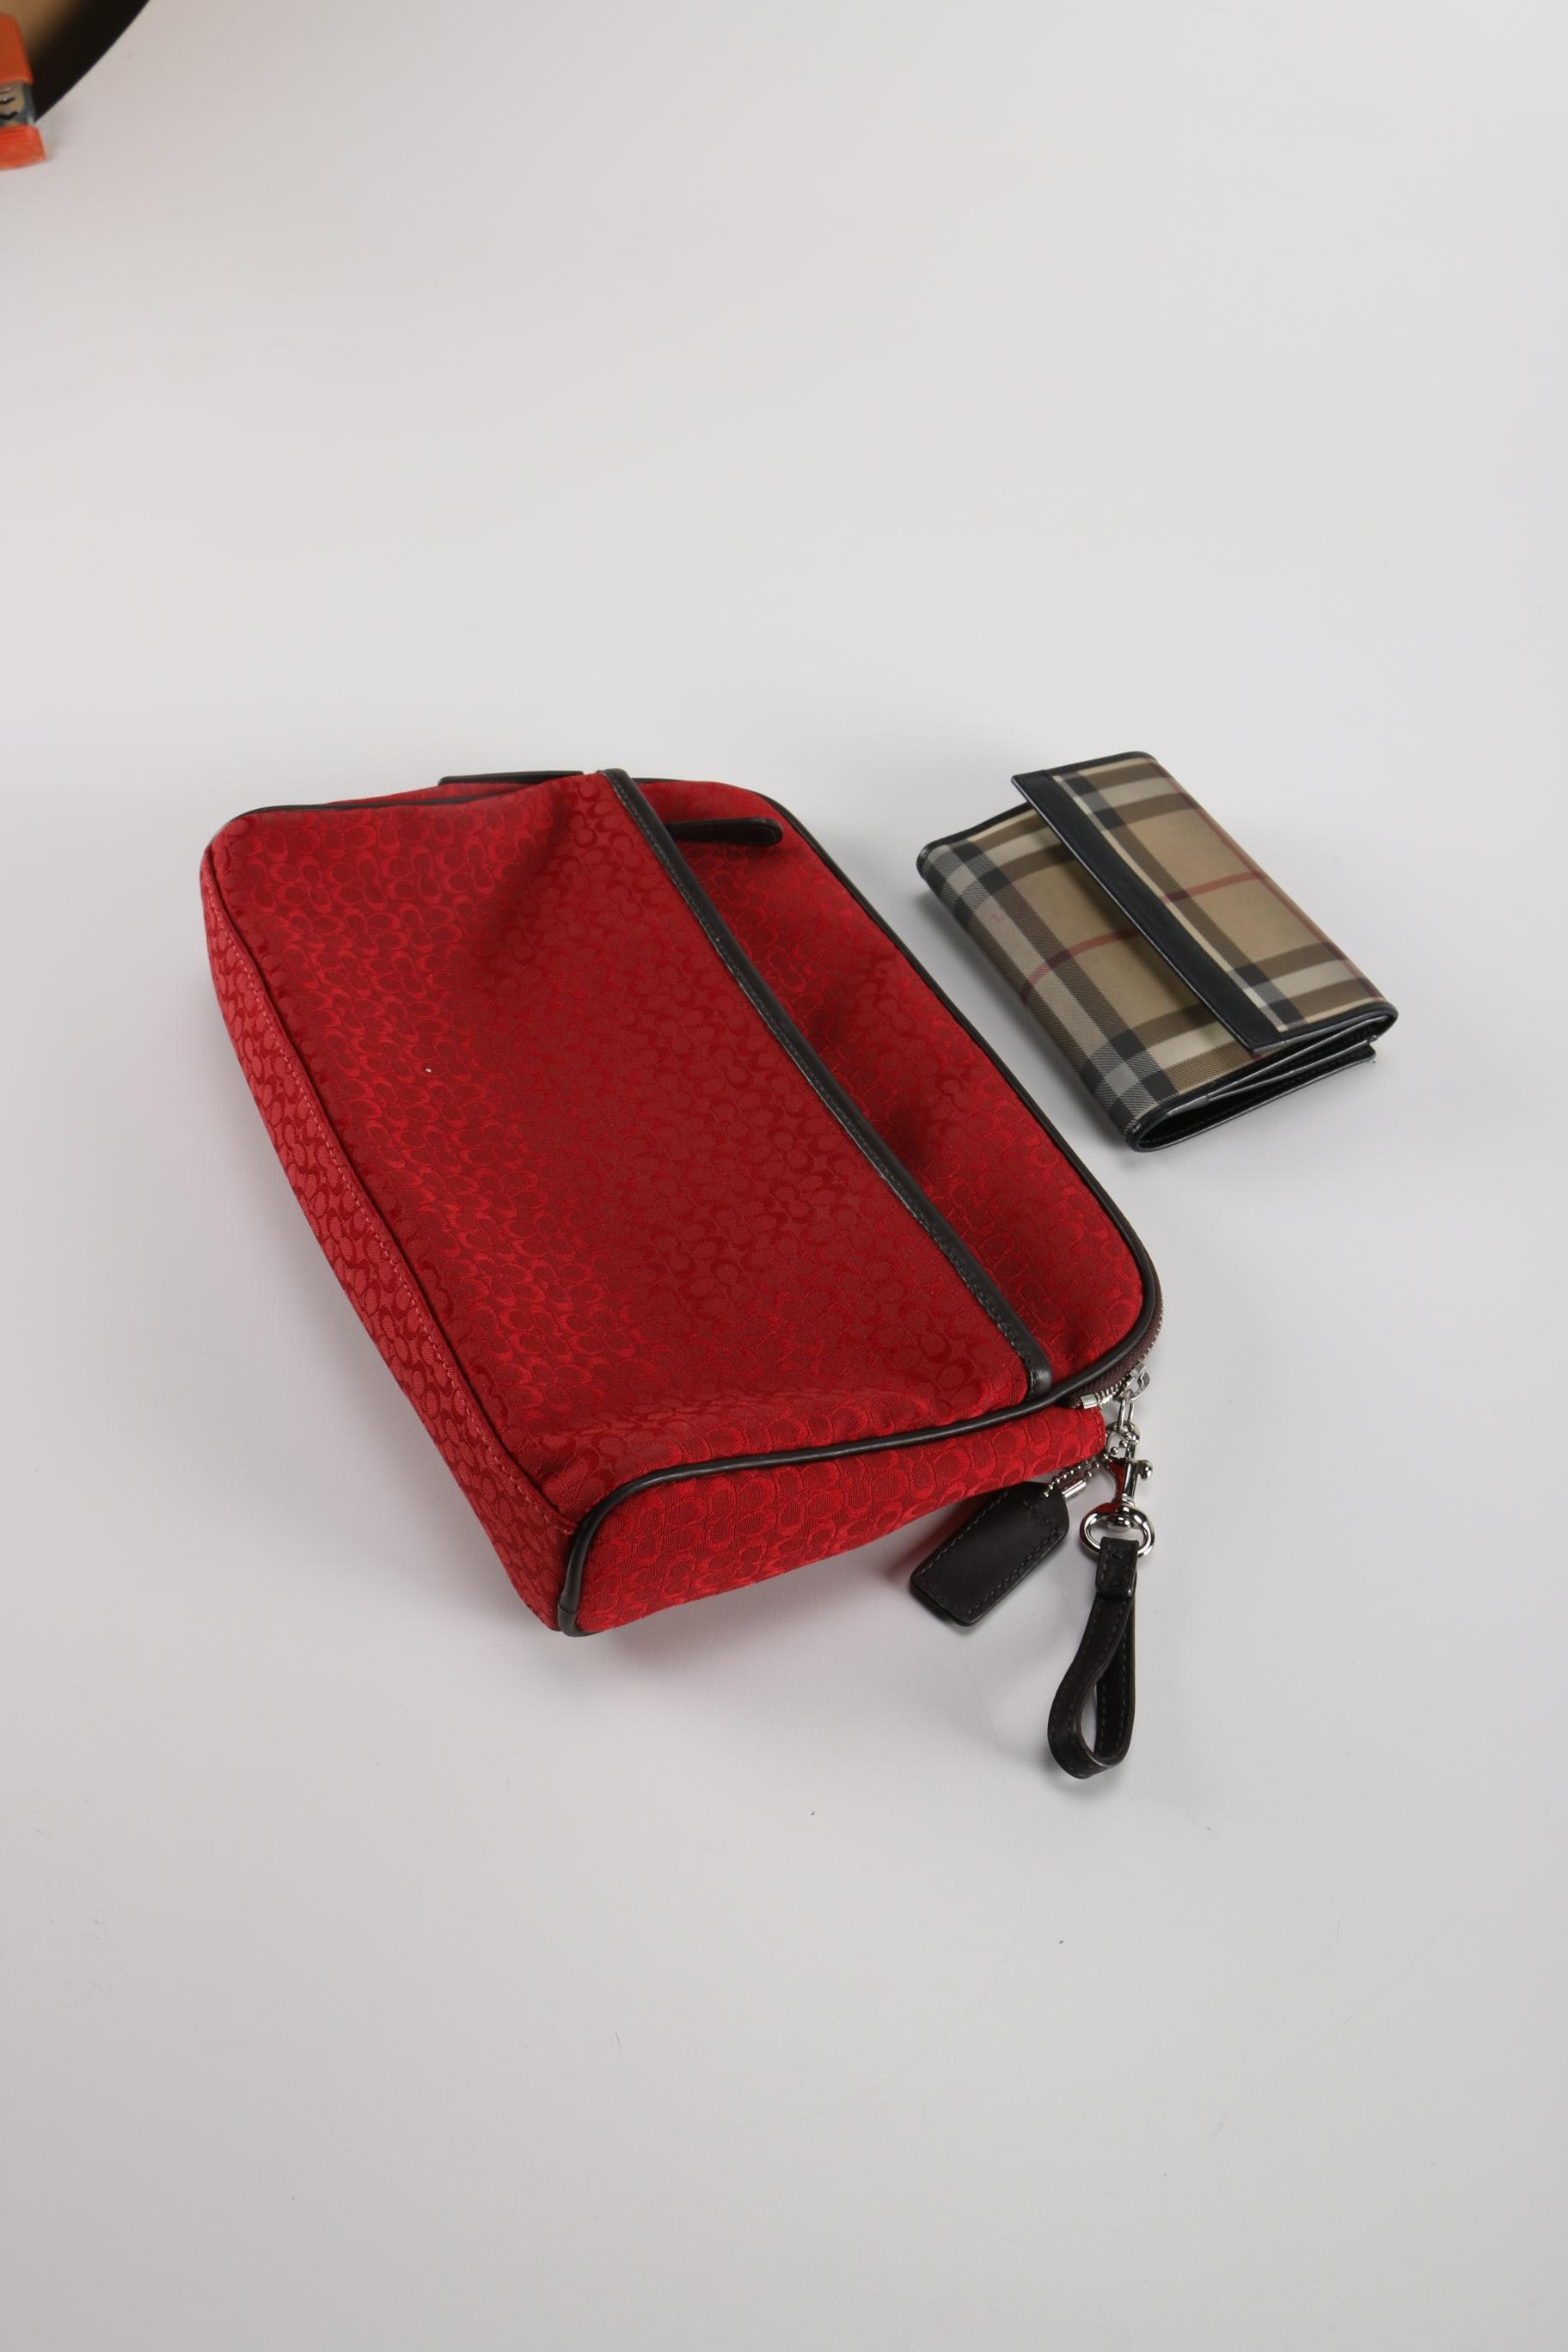 Coach Bag and Burberry Wallet